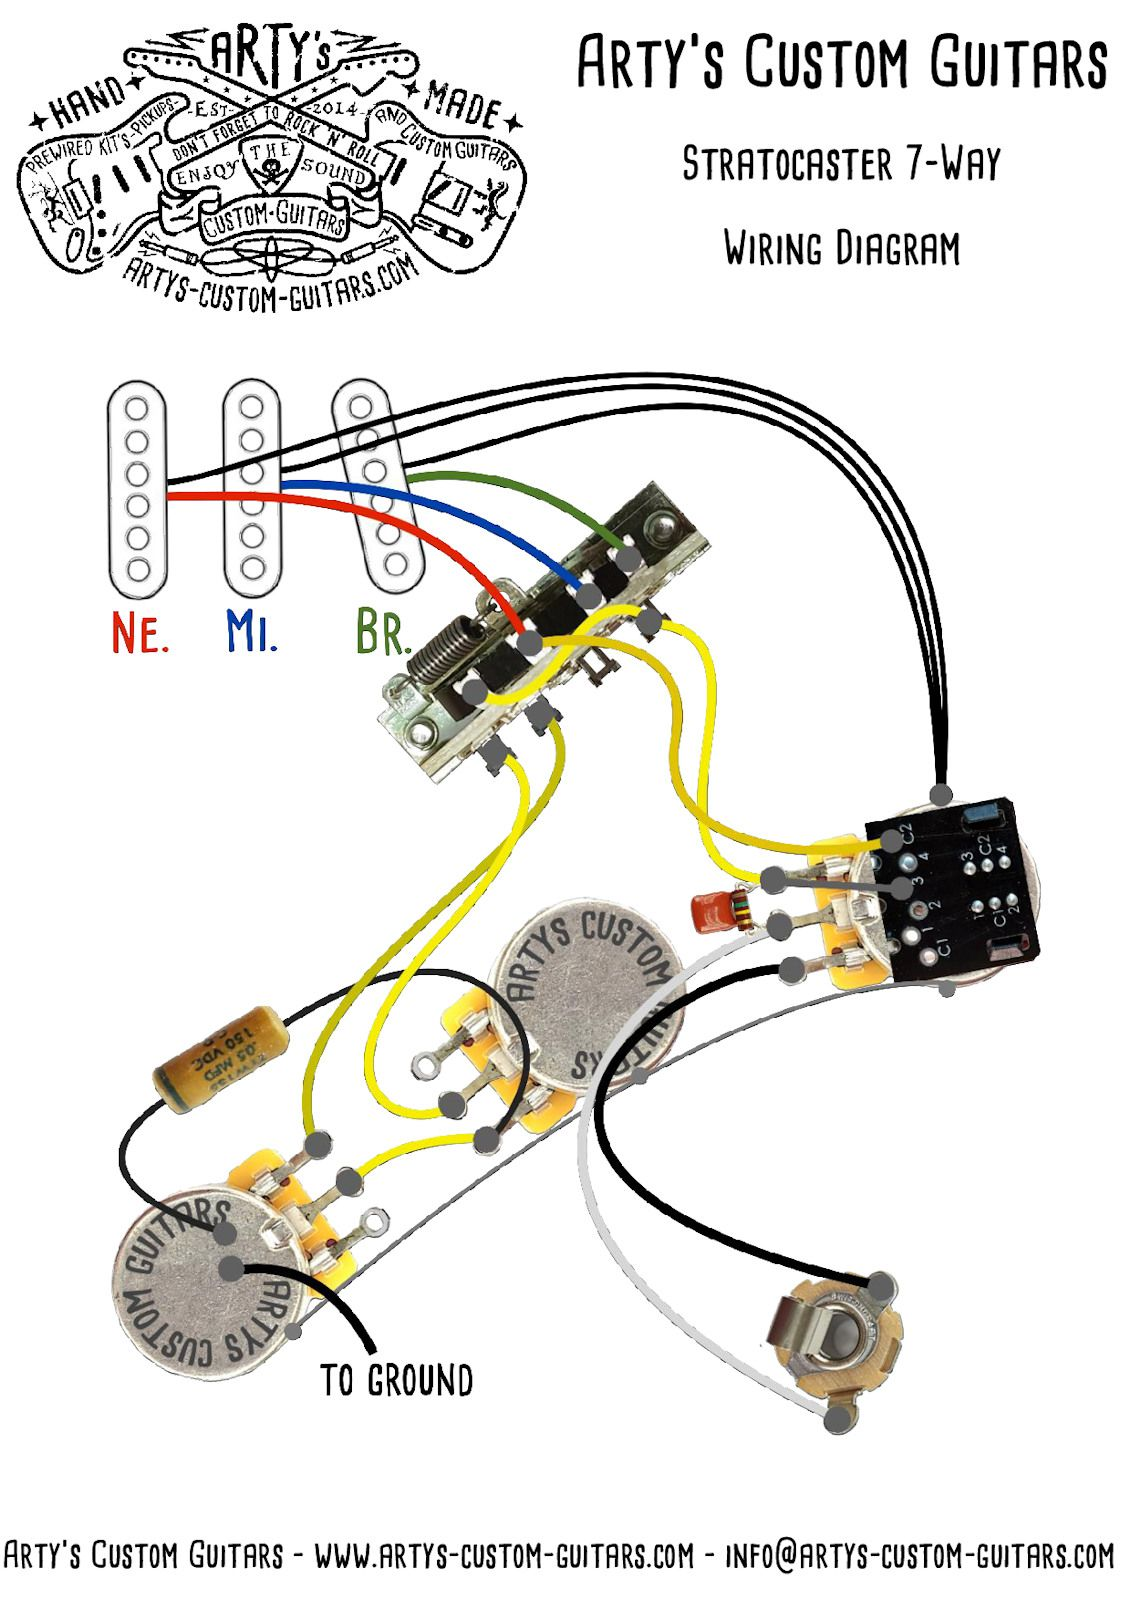 7WAY GILMOUR Prewired Kit Stratocaster in 2020 Gitarre